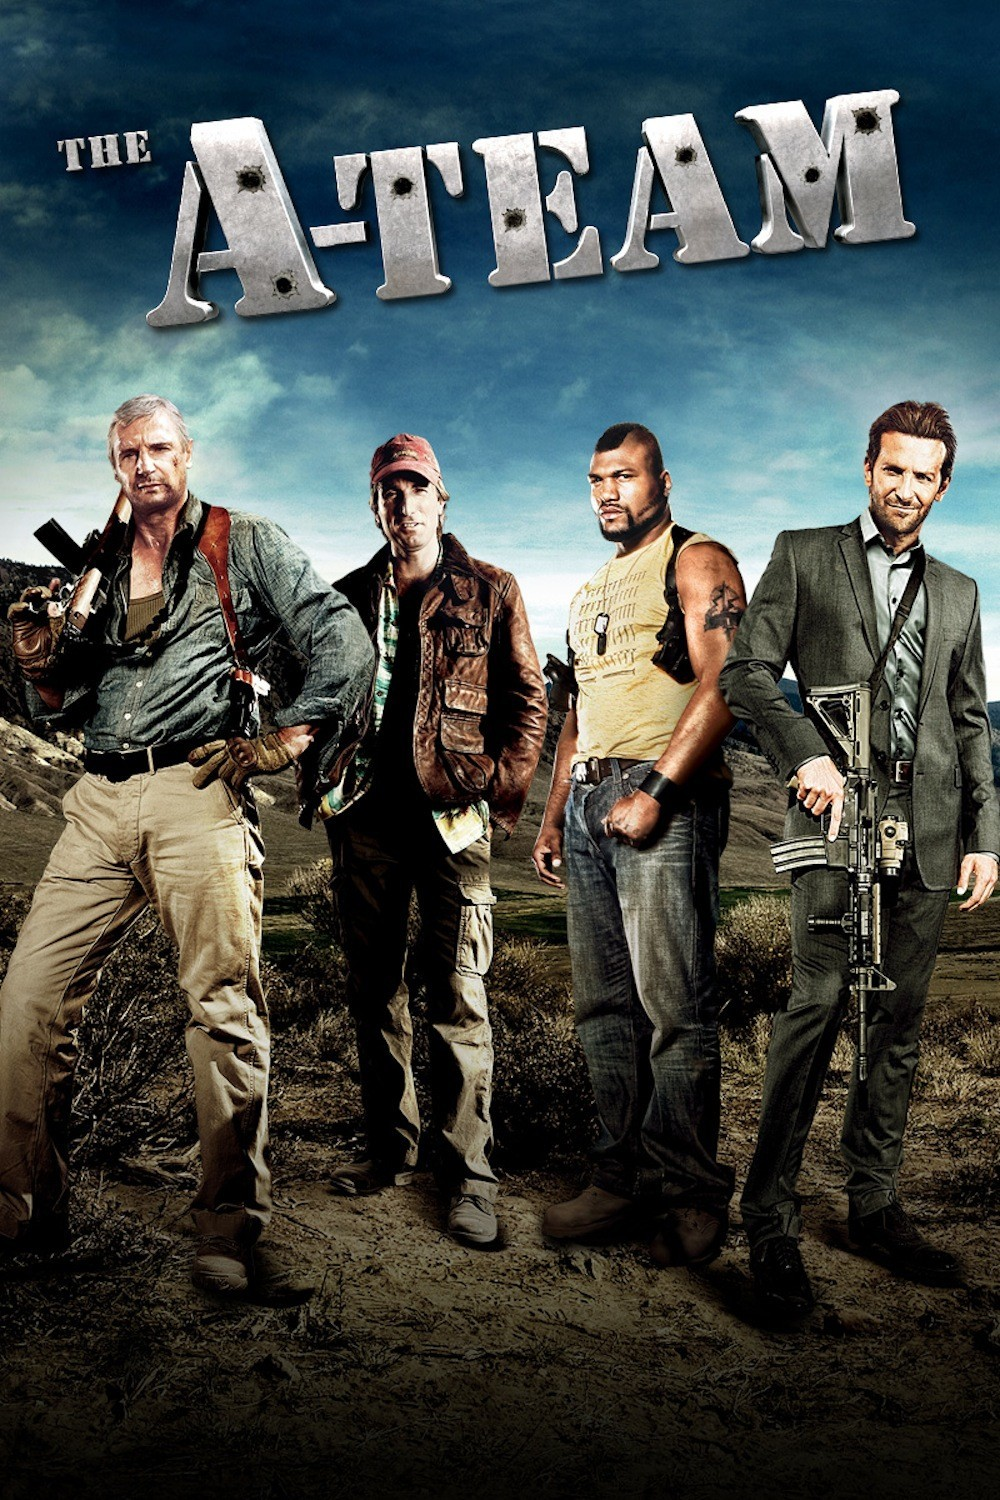 The-A-Team-2010-movie-poster